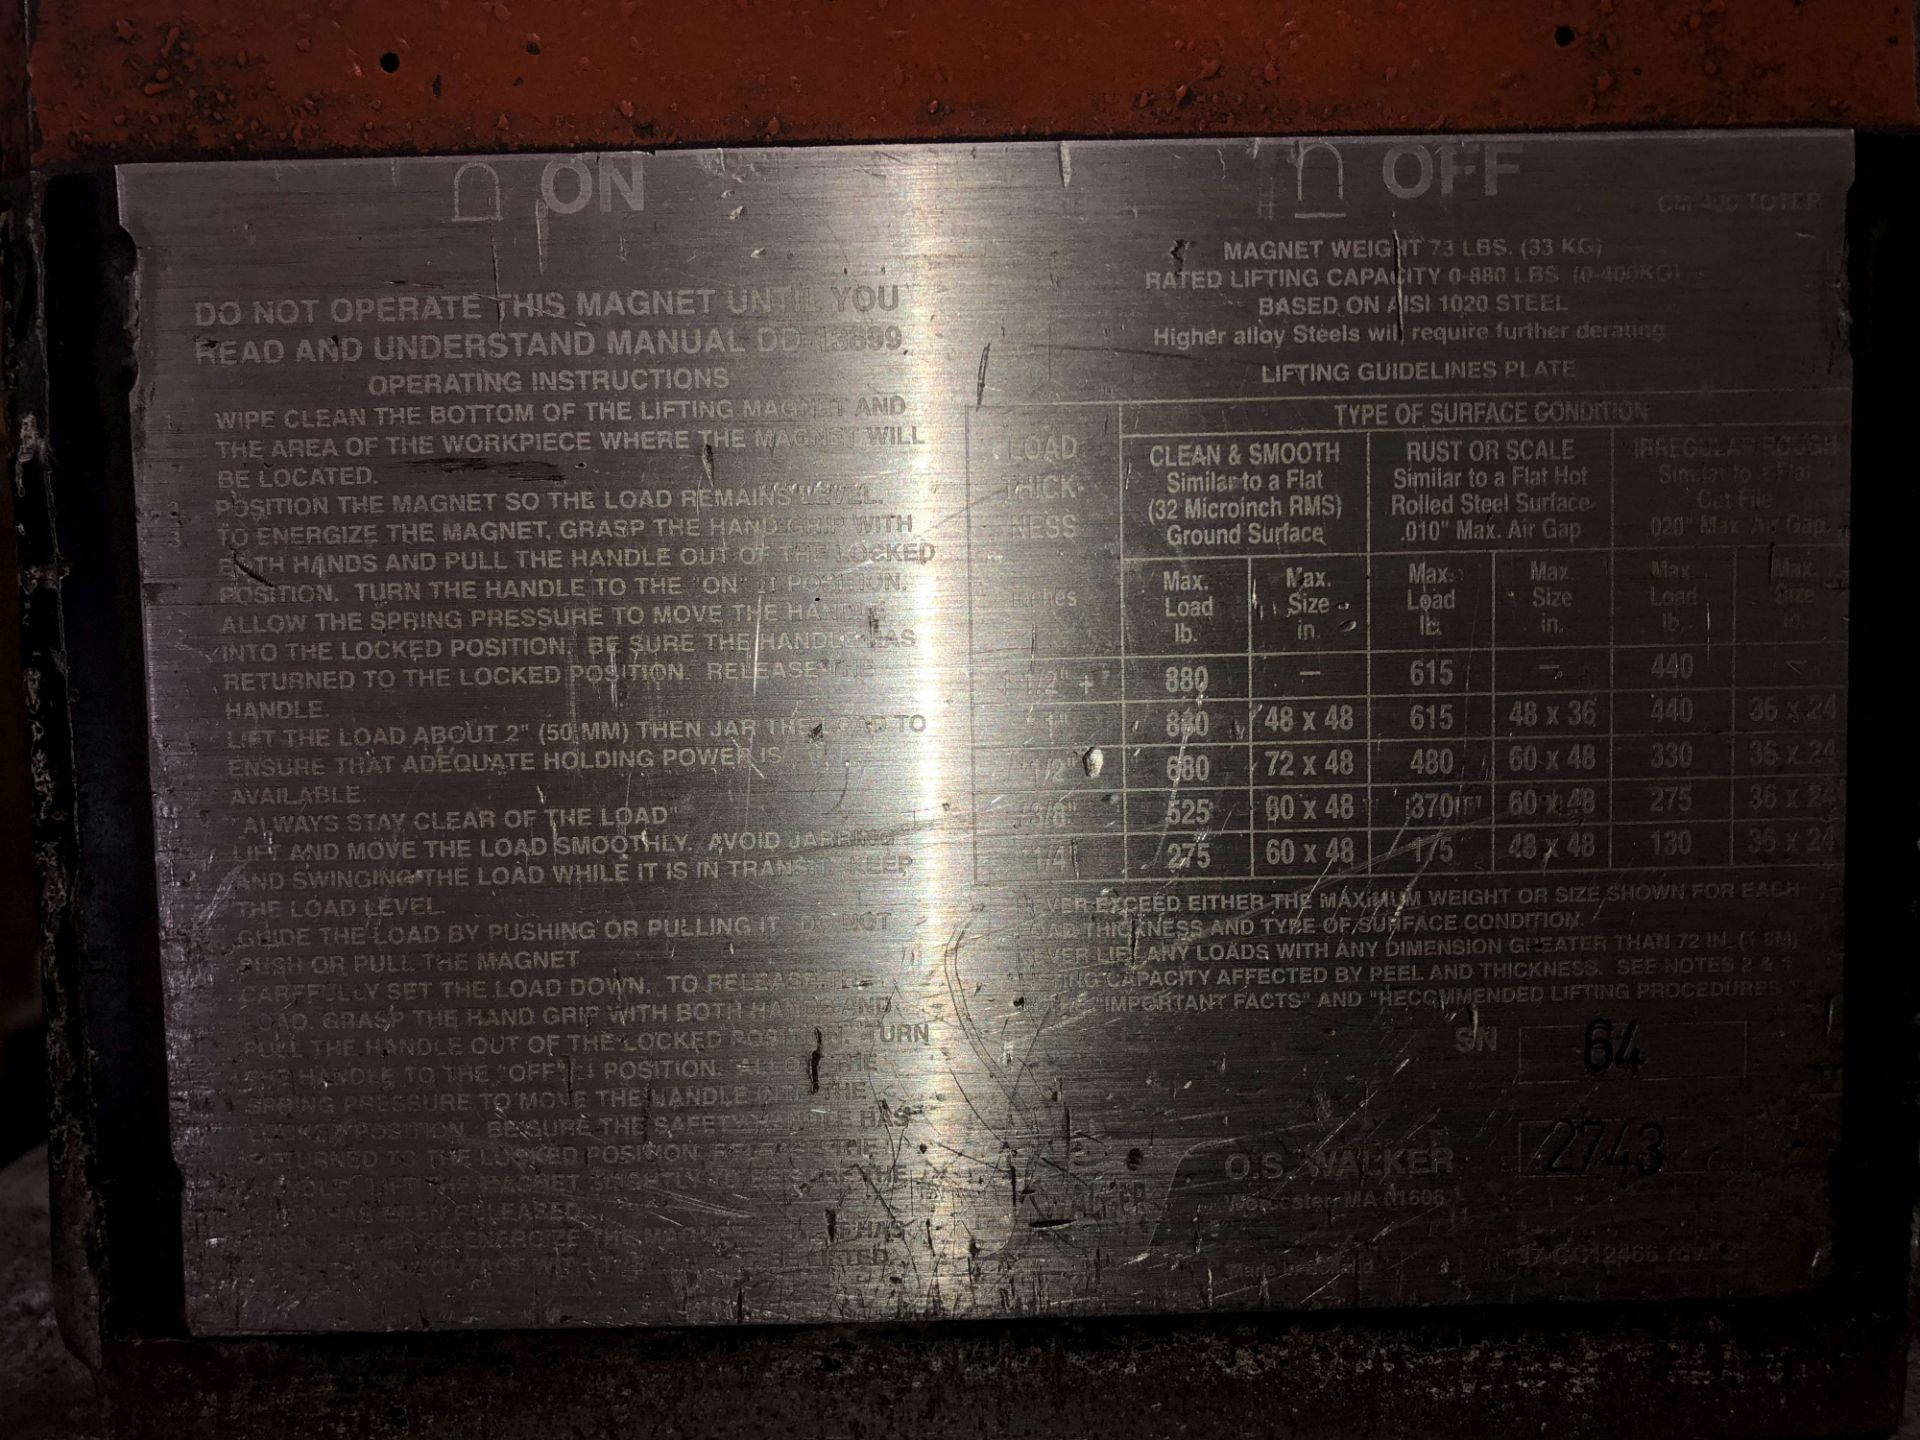 Lot 56 - OS Walker CM-400 Toter Permanent Lift Magnet, Rated Lift Capacity: 0-880 Lbs, Magnet Weight: 73